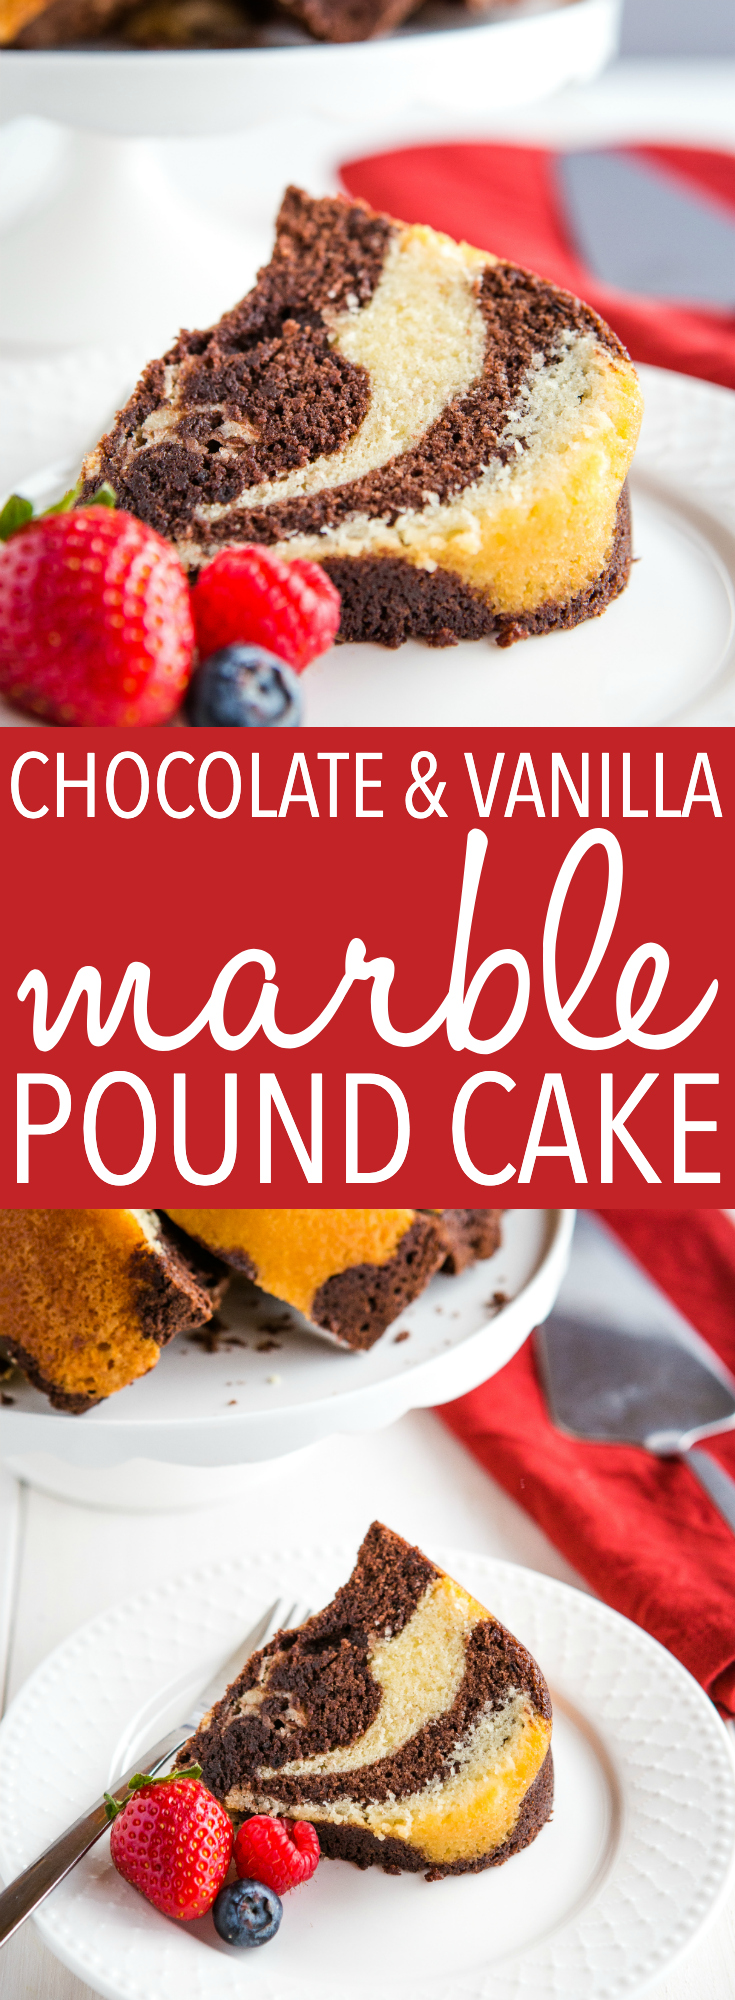 This Chocolate Vanilla Marble Pound Cake is tender and moist, and it's the perfect classic dessert to serve with fresh berries or for coffee break. Recipe from thebusybaker.ca! #poundcake #cake #easy #recipe #dessert #classic #baking #baker #foodblog #berries  via @busybakerblog